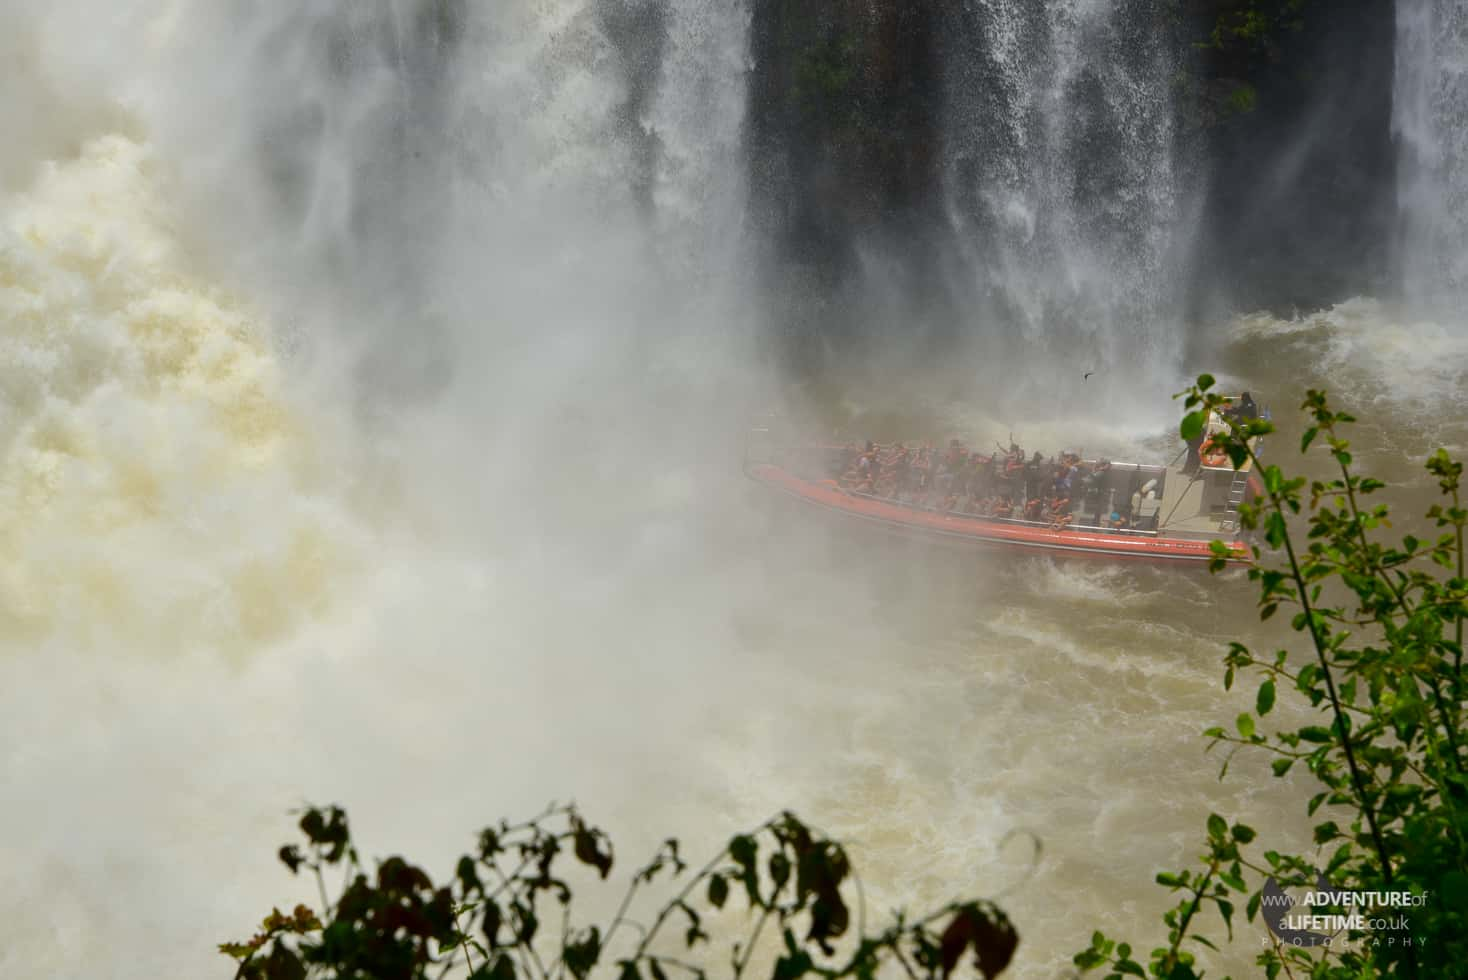 Speed Boat Under The Waterfall